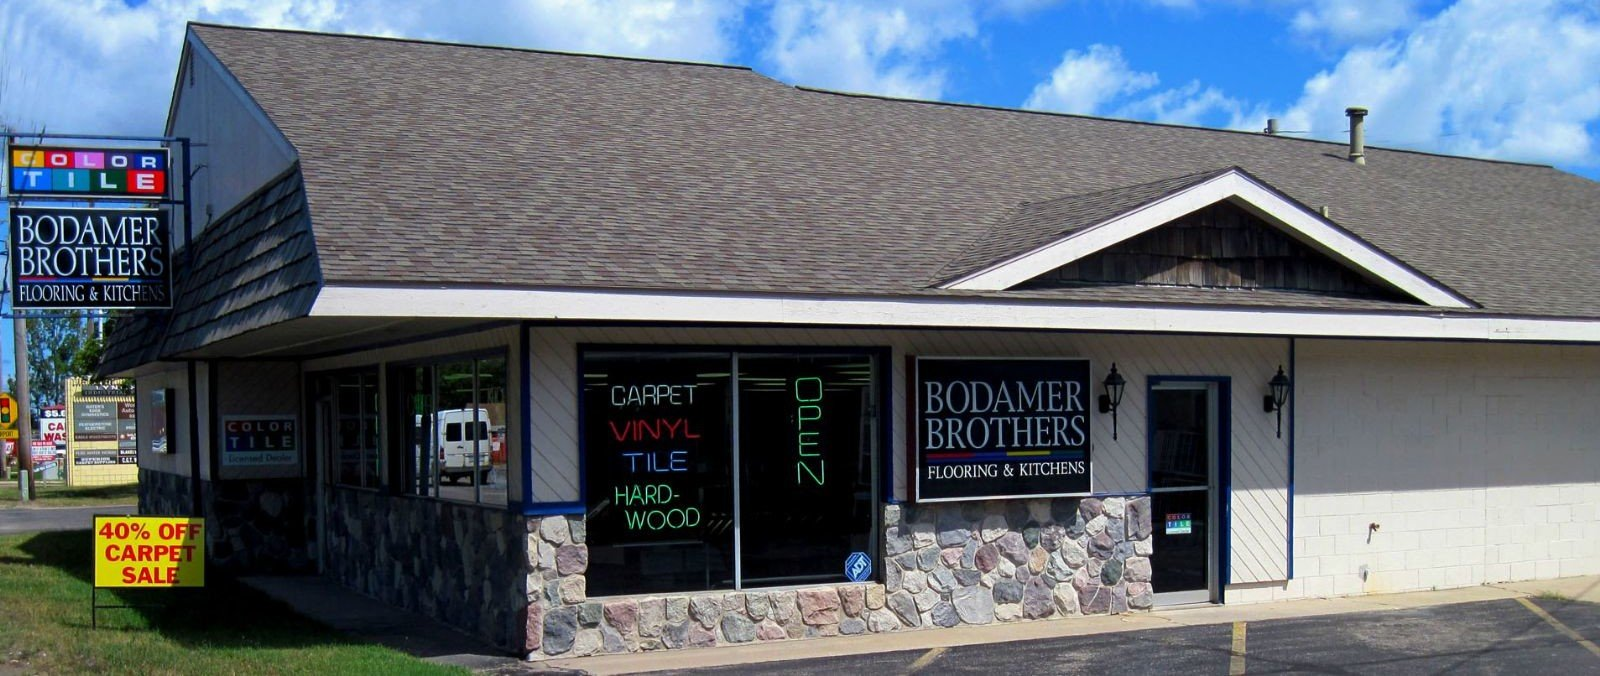 Bodamer Brothers Flooring Store Front at 3000 N. Garfield Rd. Traverse City, MI 49686